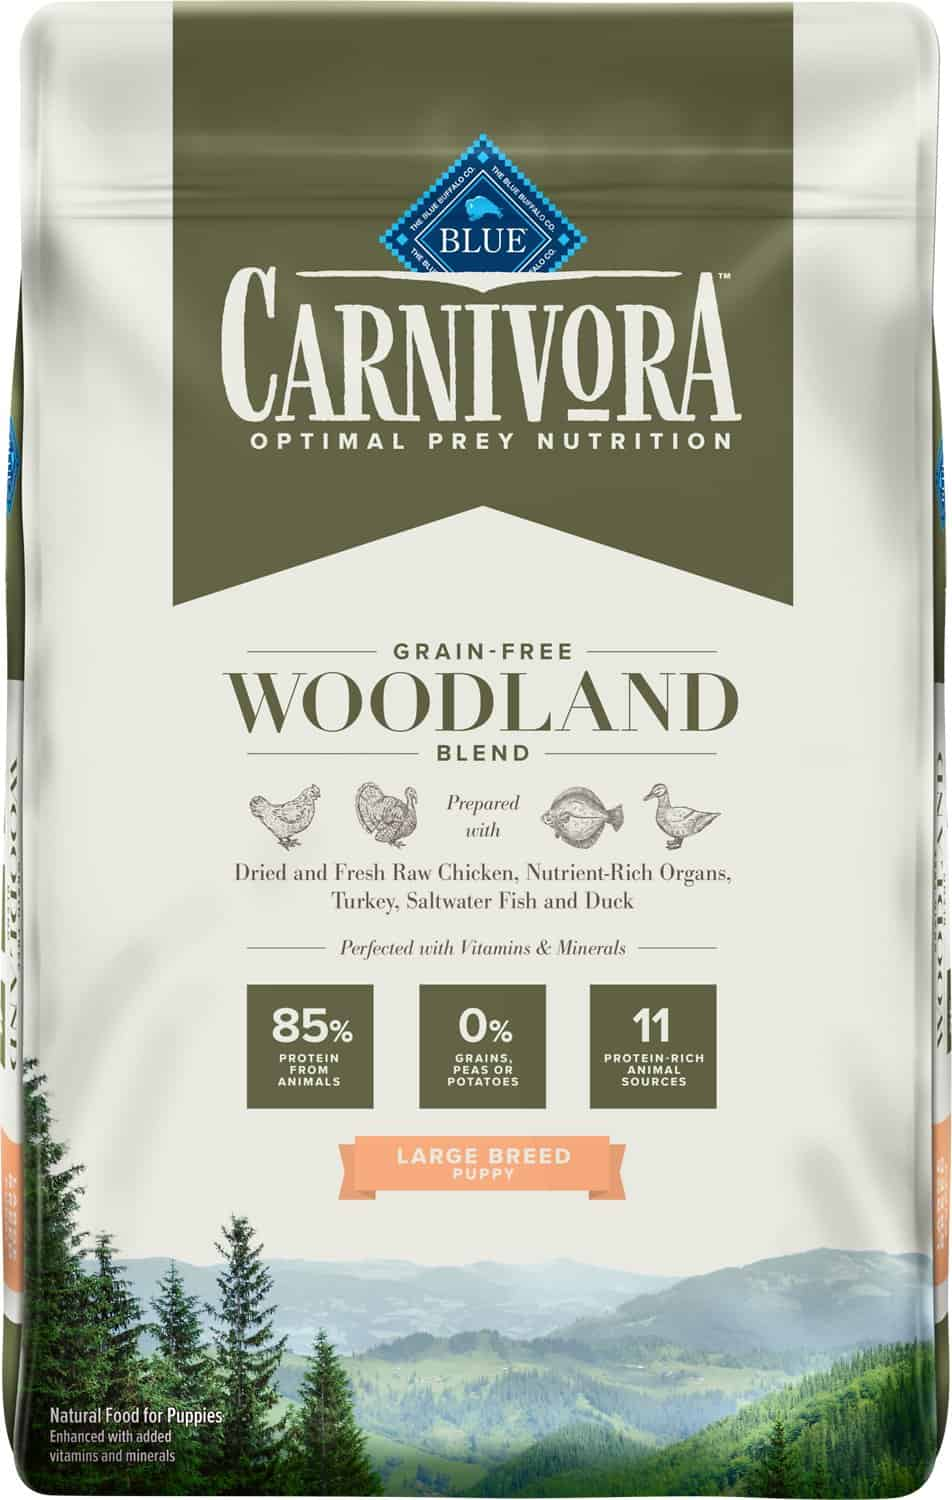 Blue Buffalo Carnivora Review 2021: The Pea & Potato Free Dog Food Line 19